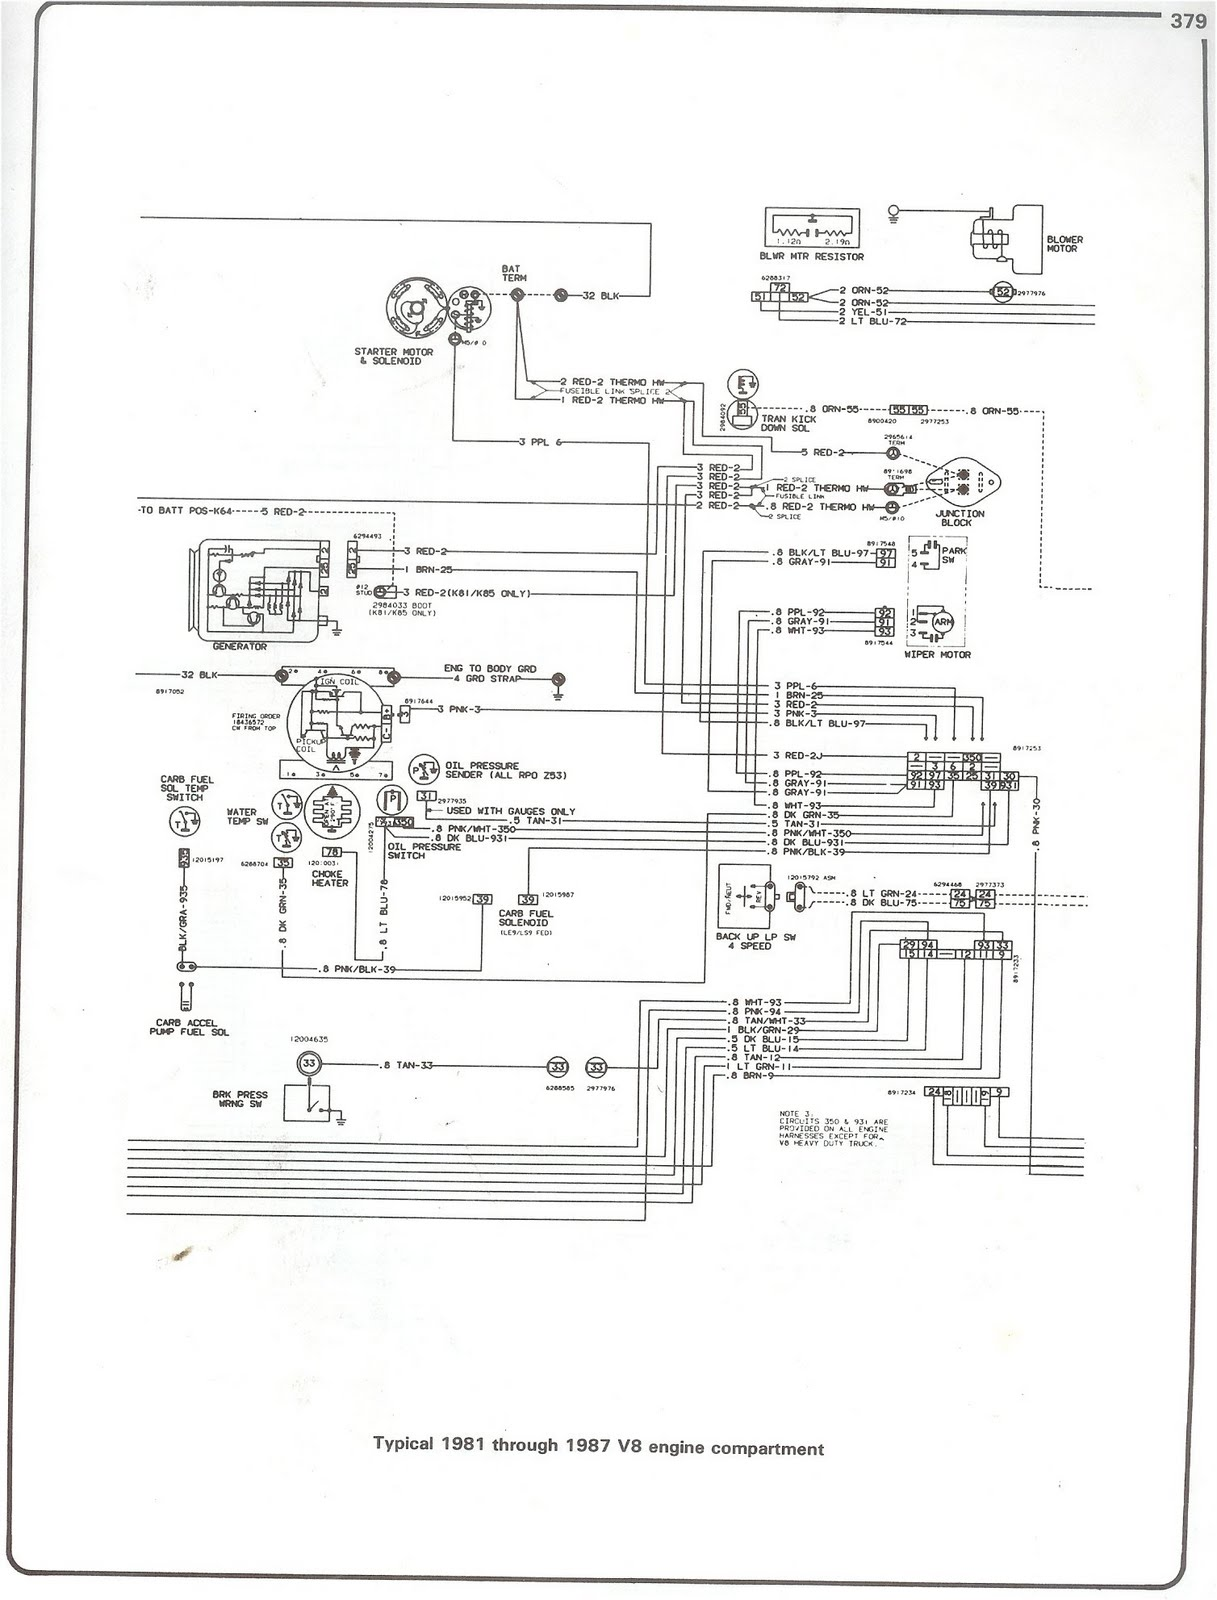 1982 Chevrolet Truck Wiring Diagram Dometic Ac Thermostat Chevy Engine Best Library Acdelco Model 16194445 82 Pickup 1981 Wire